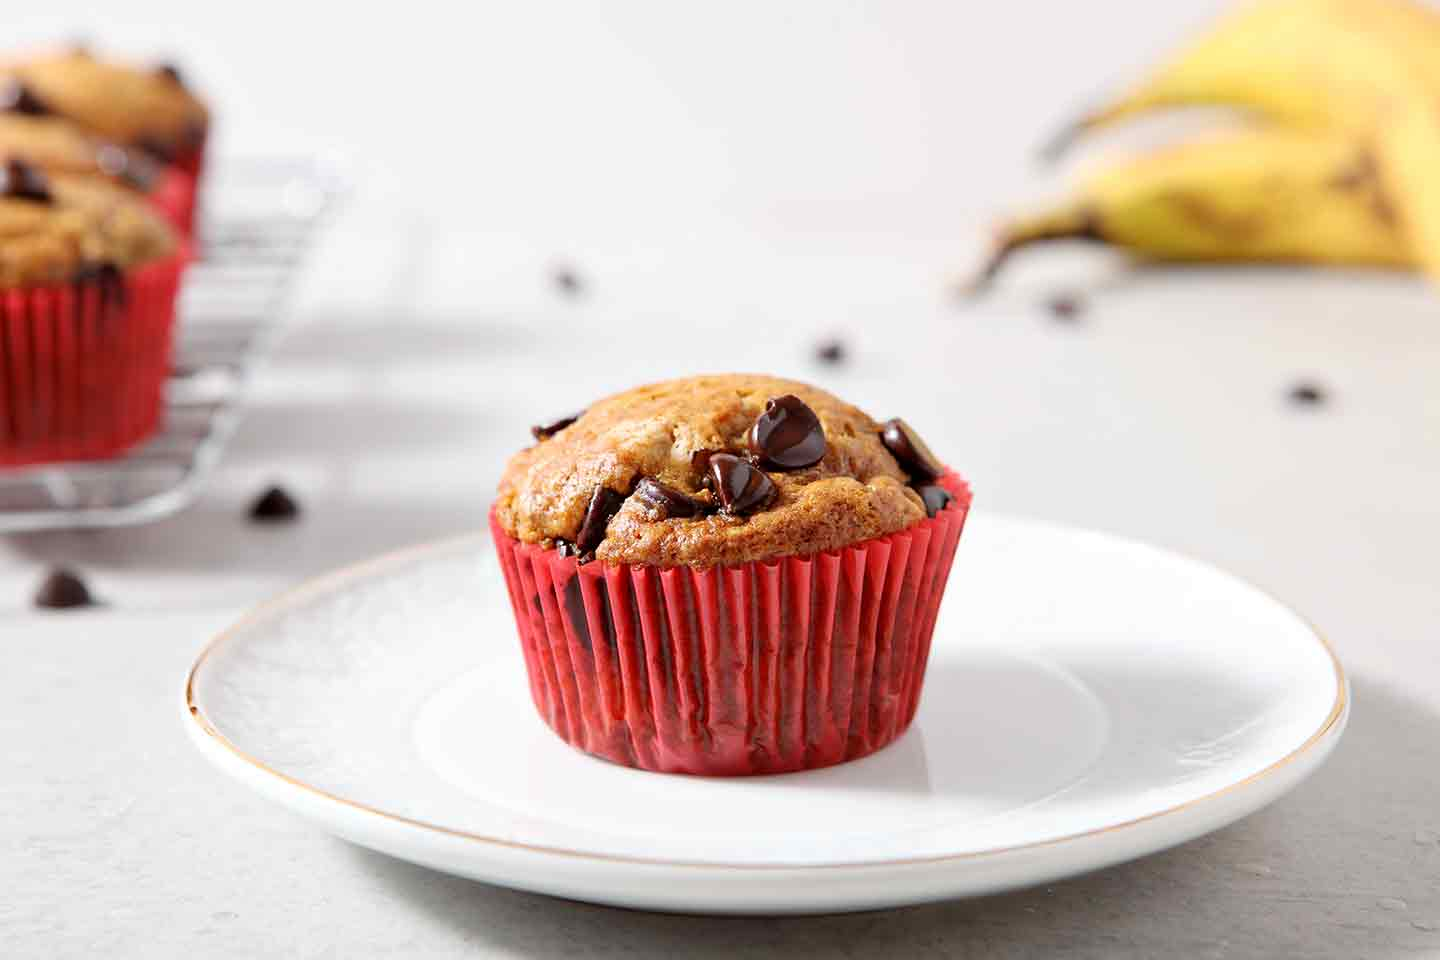 A lone Vegan Banana Chocolate Chip Muffin is placed on a white plate for serving